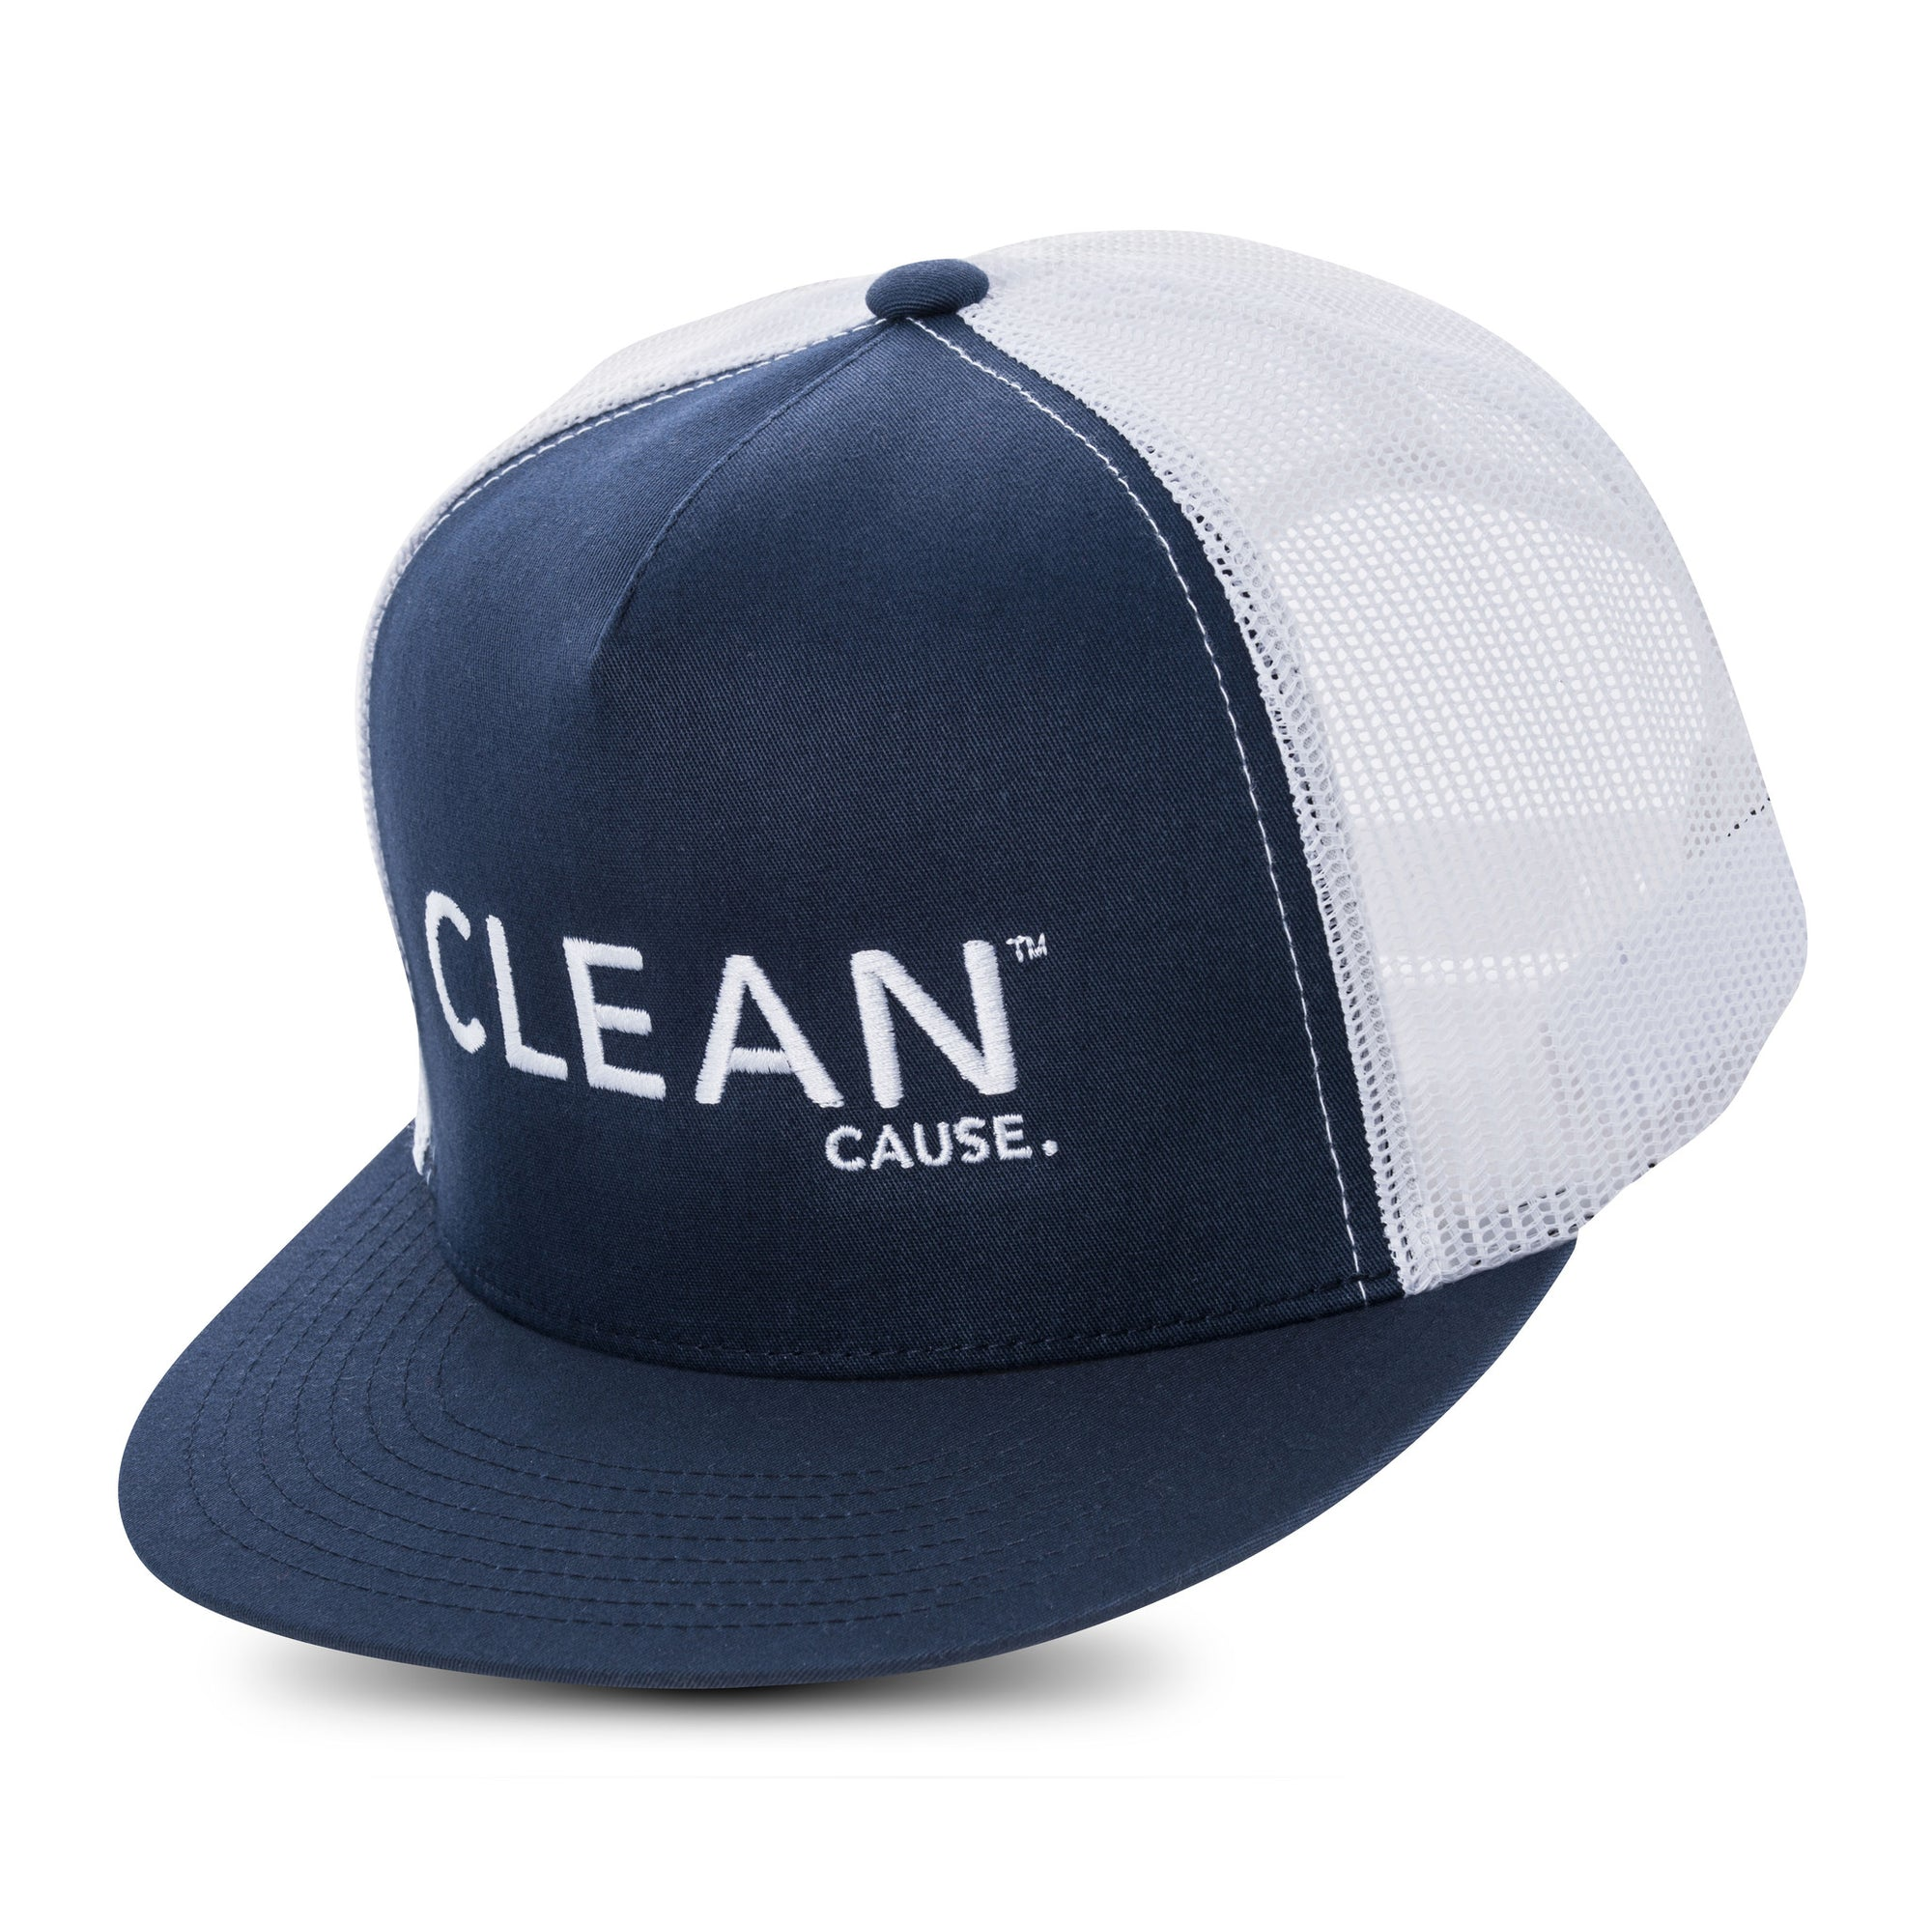 CLEAN Cause Trucker Hat